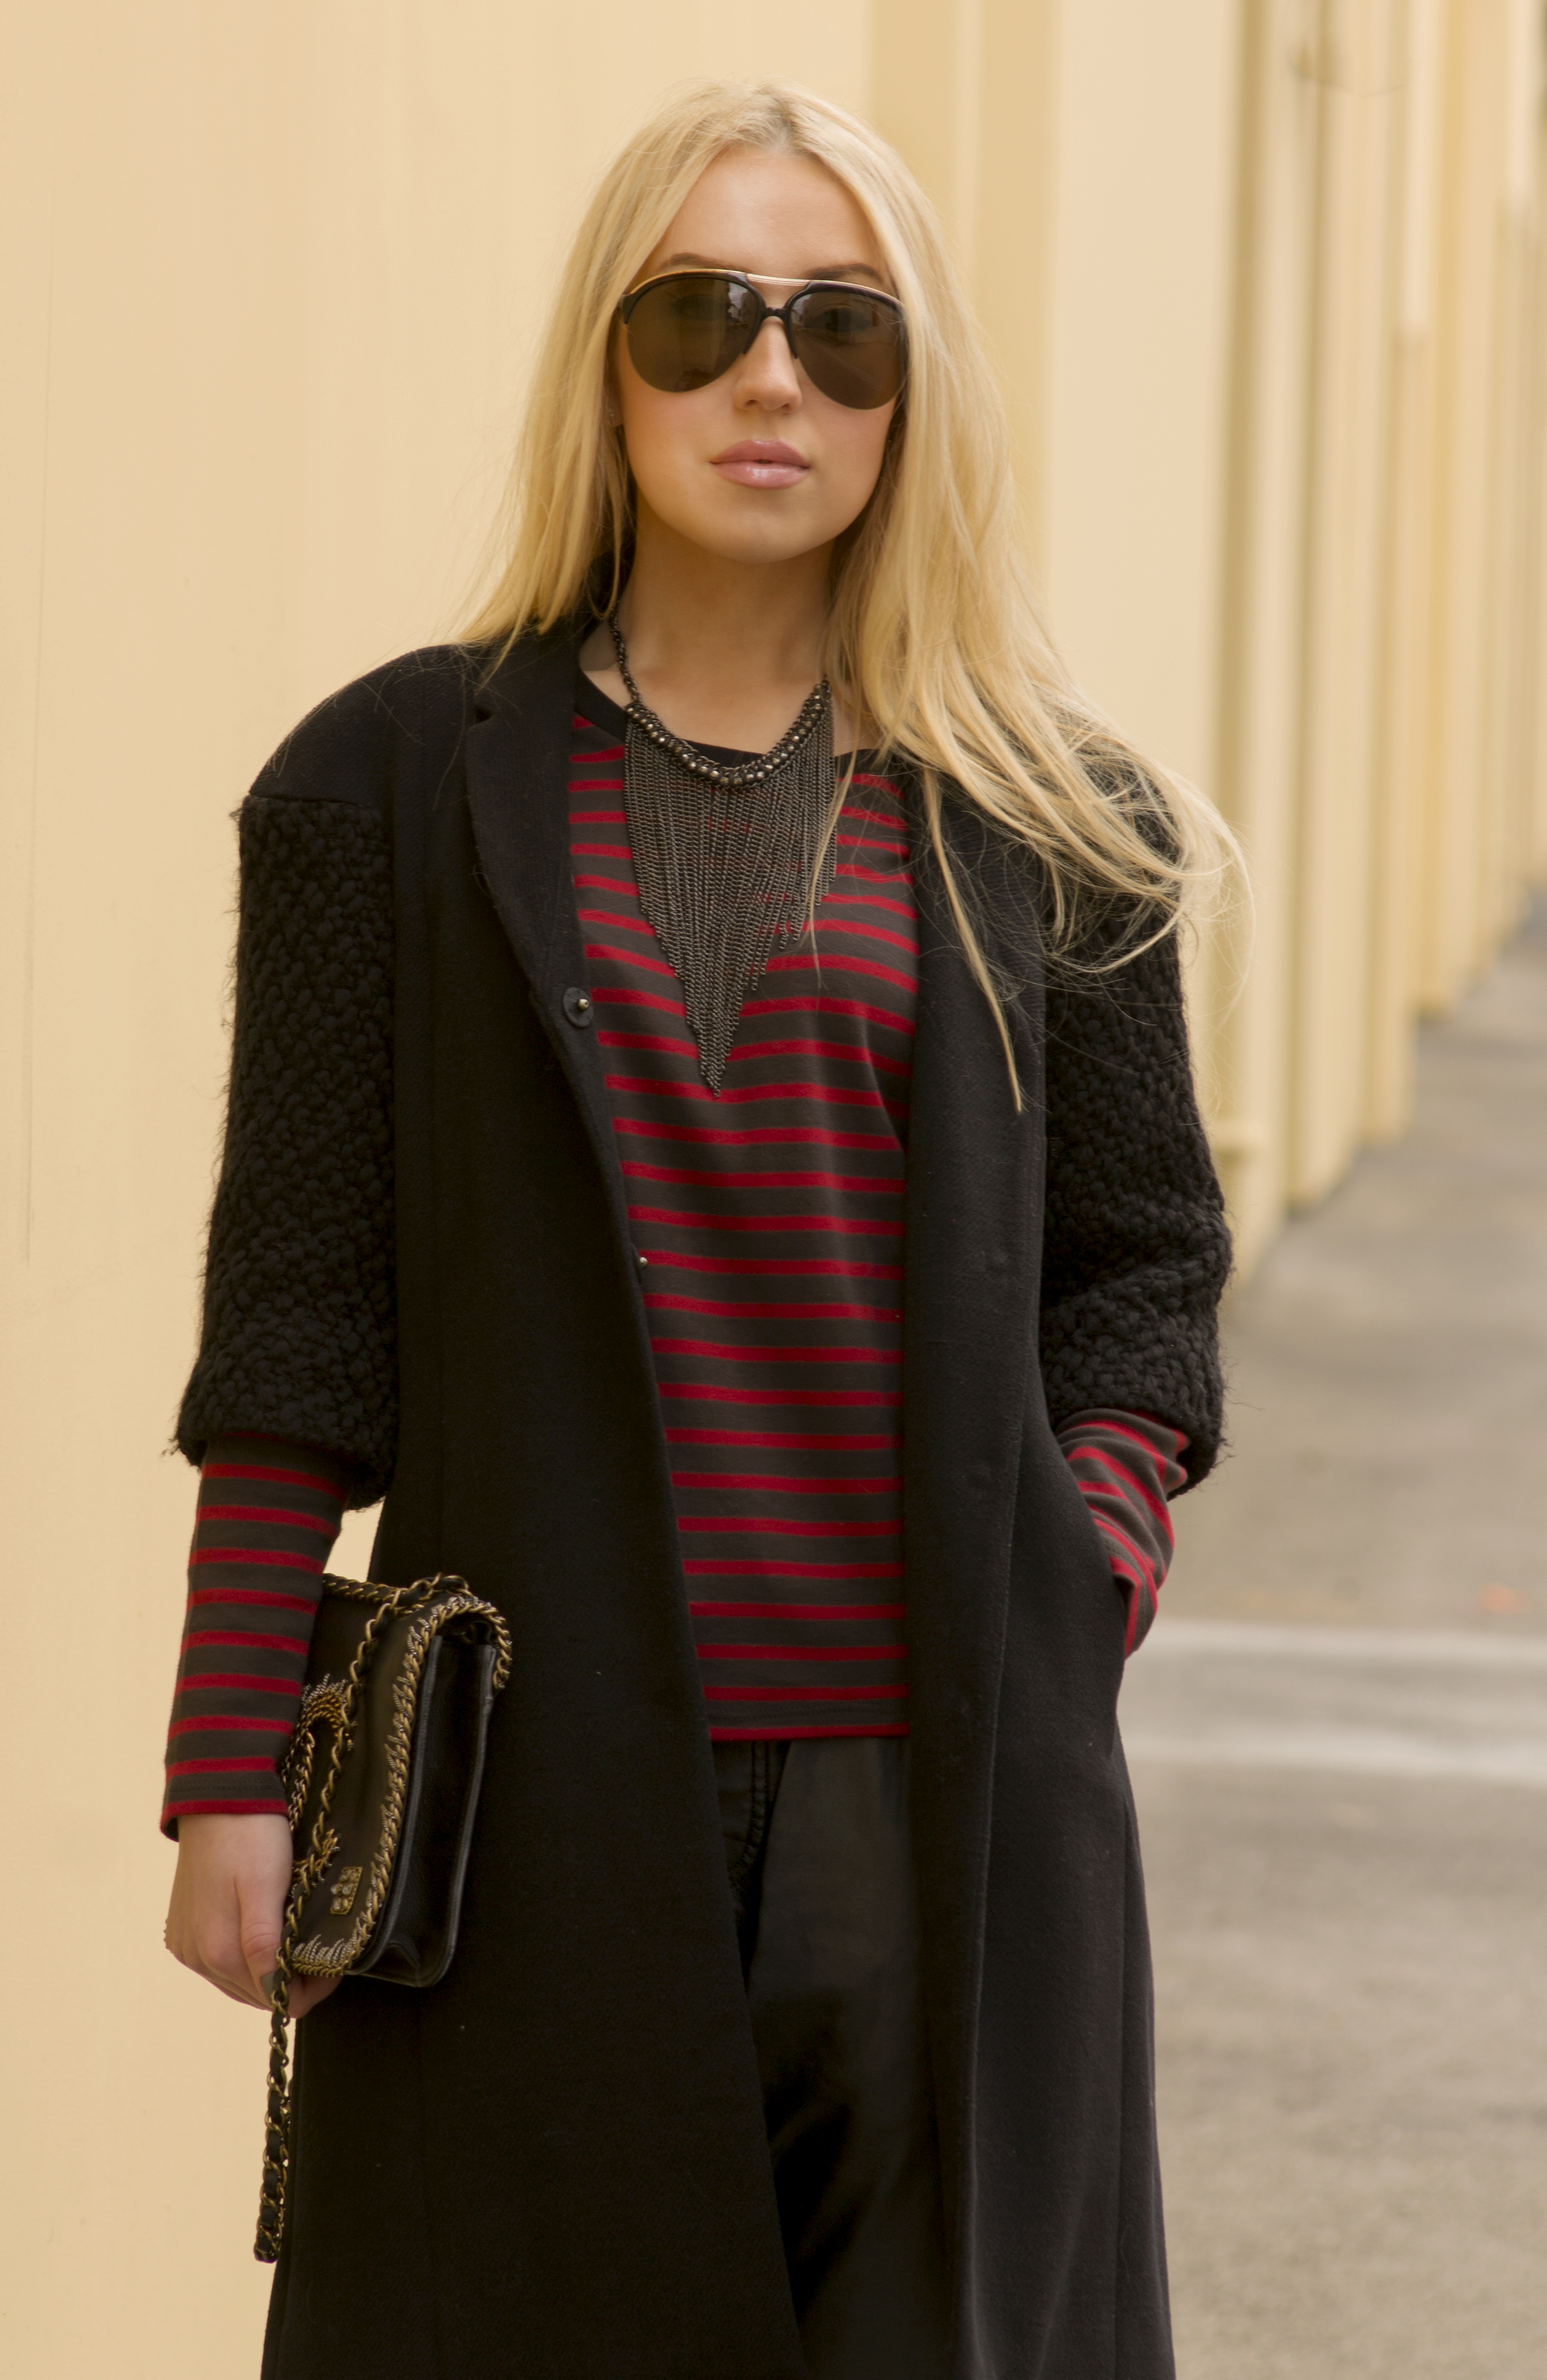 black coat and necklace